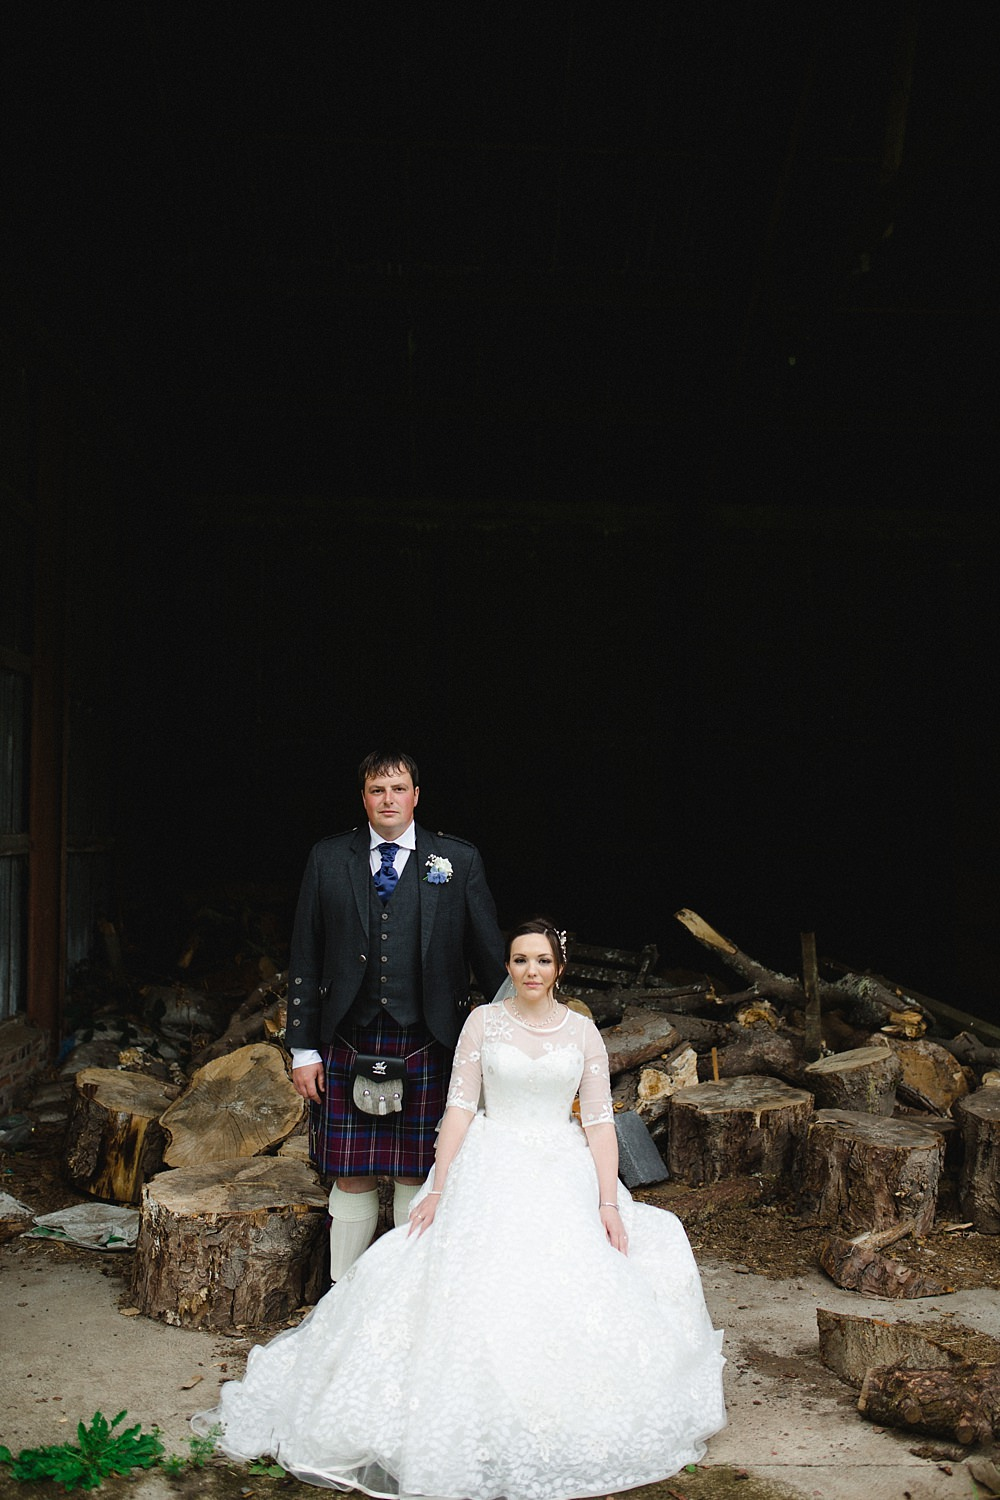 Chantal Lachance-Gibson Photography,Fine Art Wedding Photographers,The Gibsons,creative wedding photographers glasgow,husband and wife photographers scotland,natural wedding photographers,natural wedding photographers Glasgow,two wedding photographers scotland,